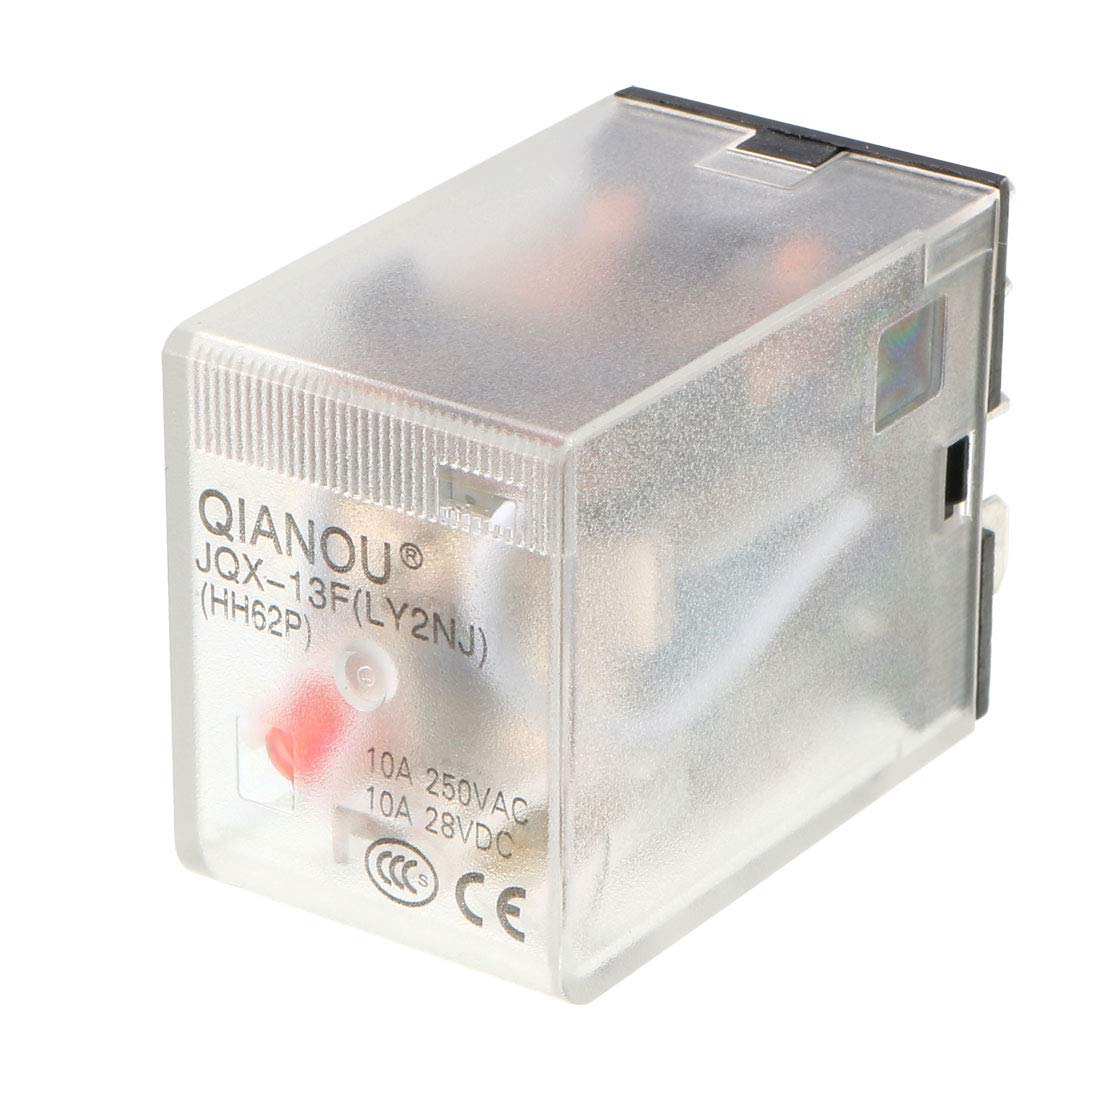 uxcell DC12V Coil Green Indicator Light 8 Pin DPDT Electromagnetic General Purpose Power Relay JQX-13F